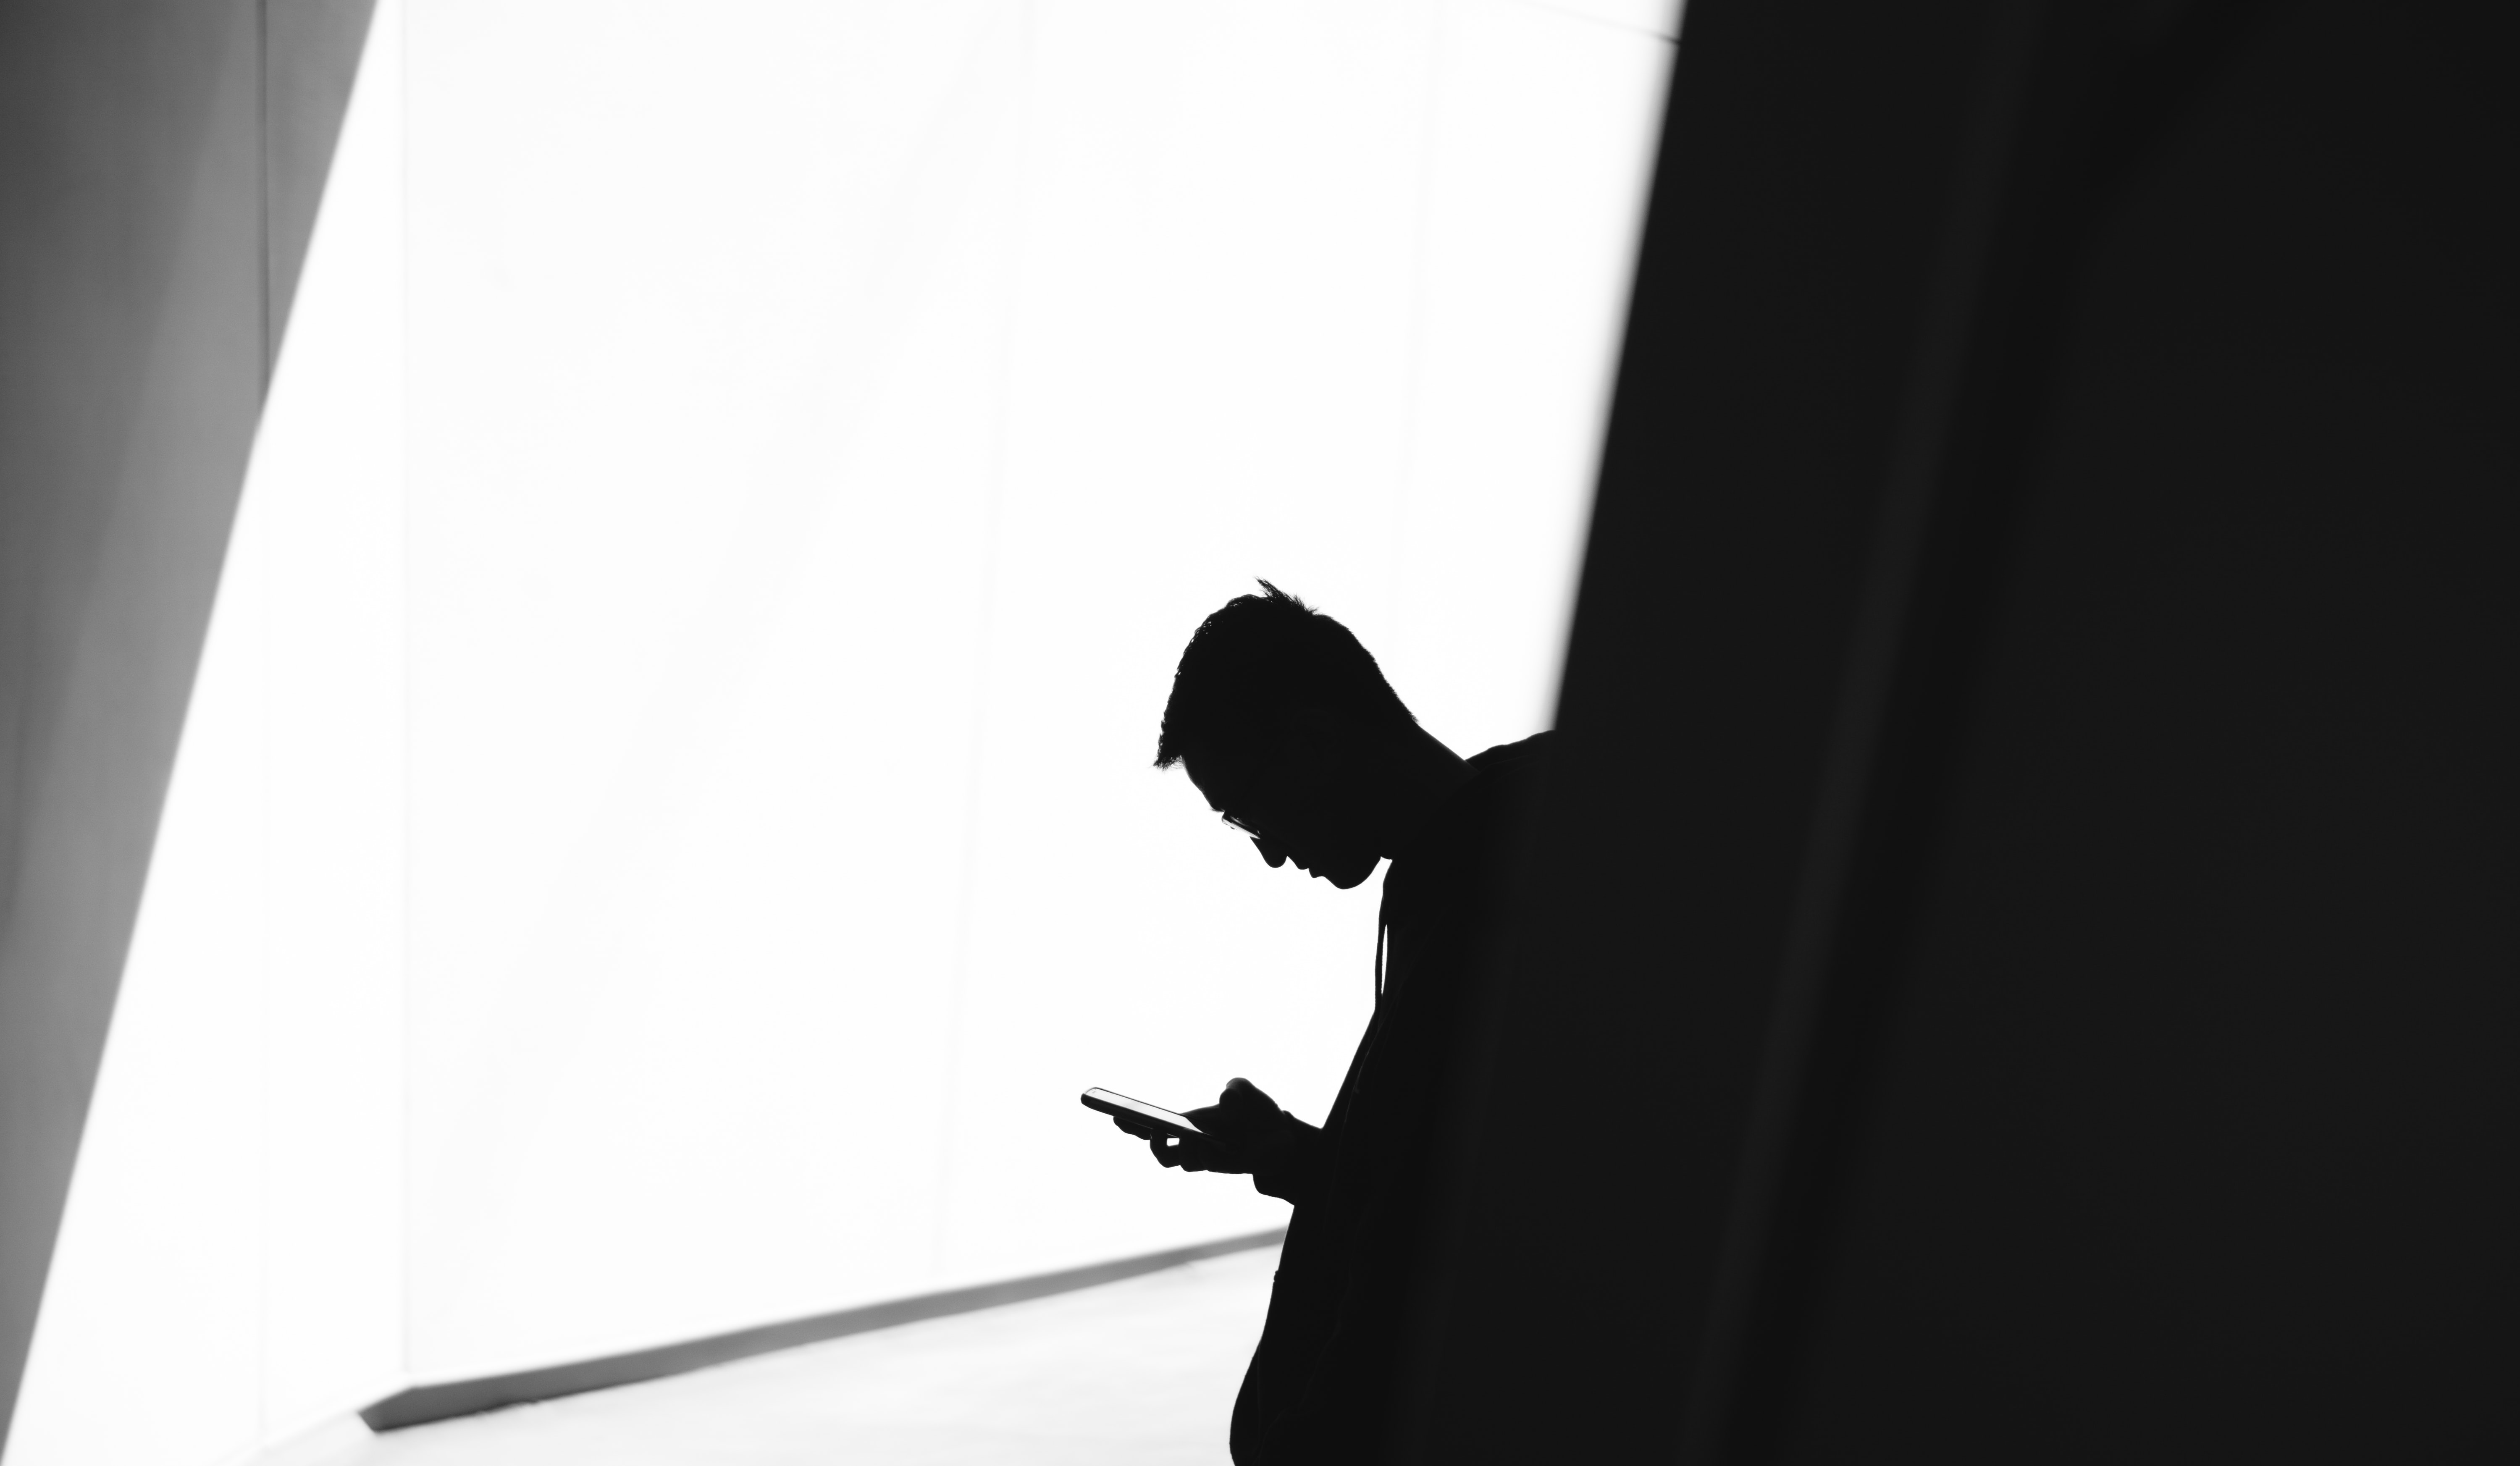 Silhouette of a man looking at his phone against a bright wall in Toronto.